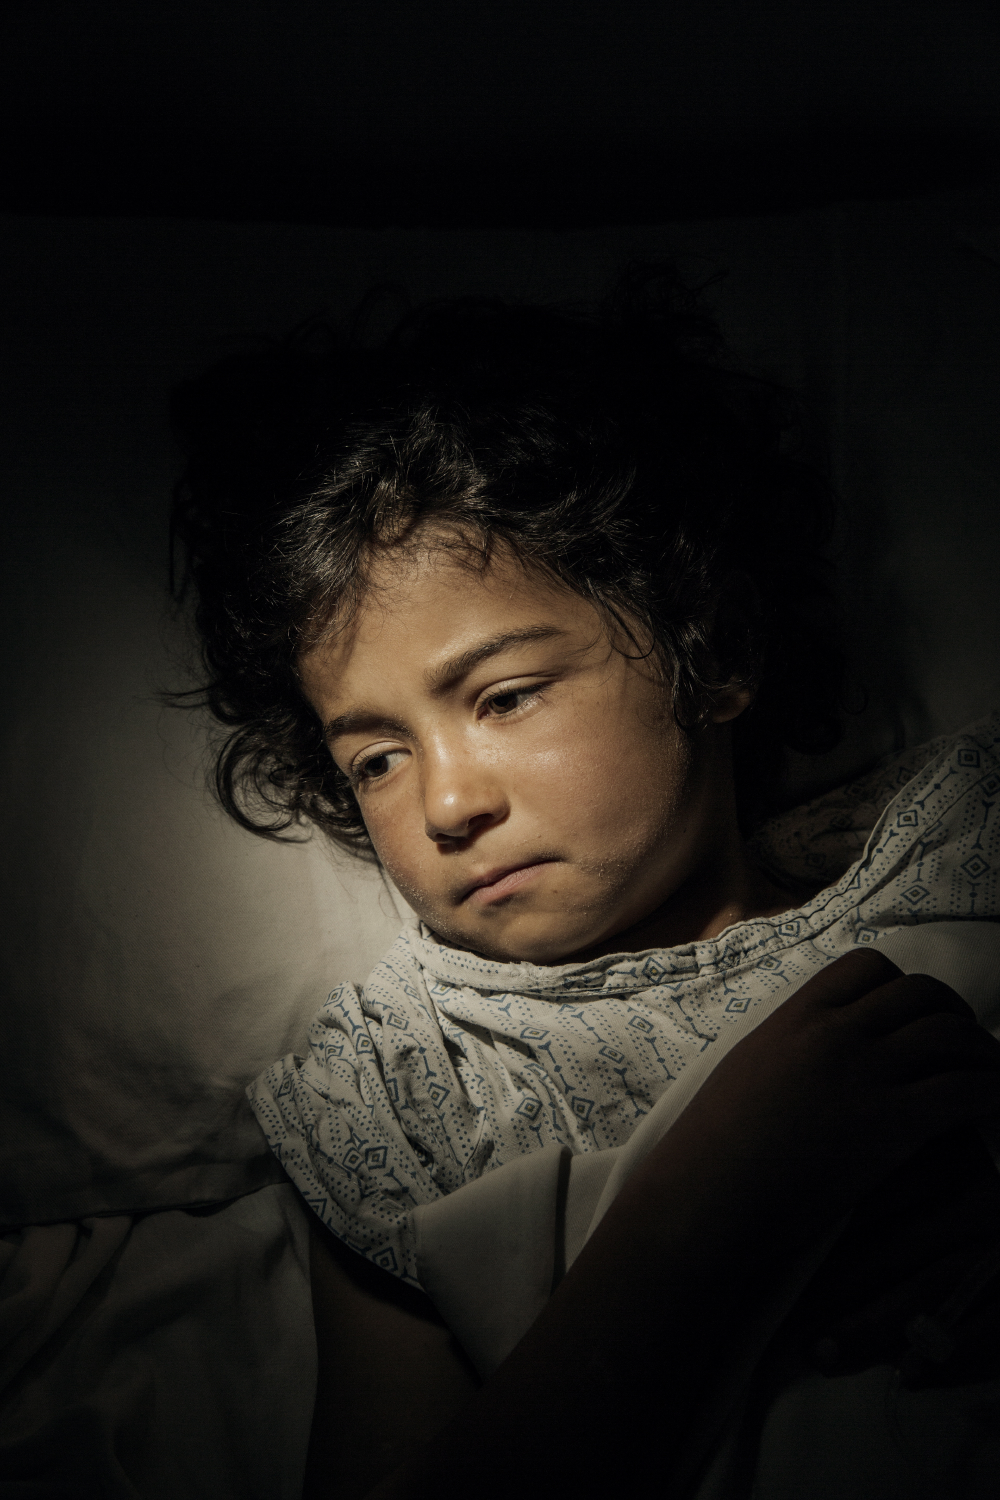 Bibi Najla, age 7, after being shot during fighting between Taliban and government forces in Logar Province, Afghanistan, 2015.